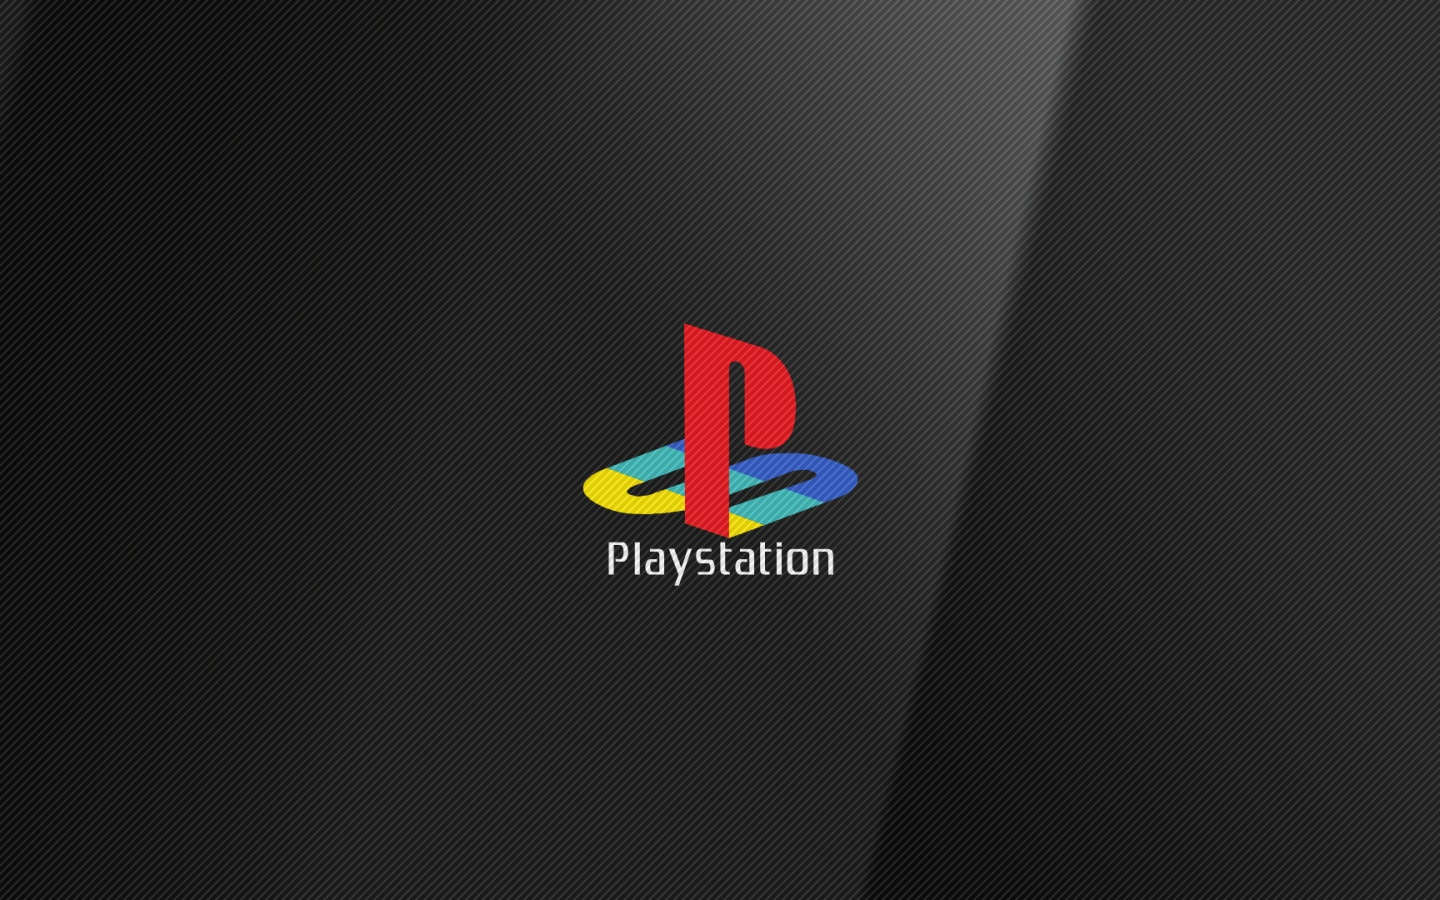 Sony Playstation Logo Wallpaper